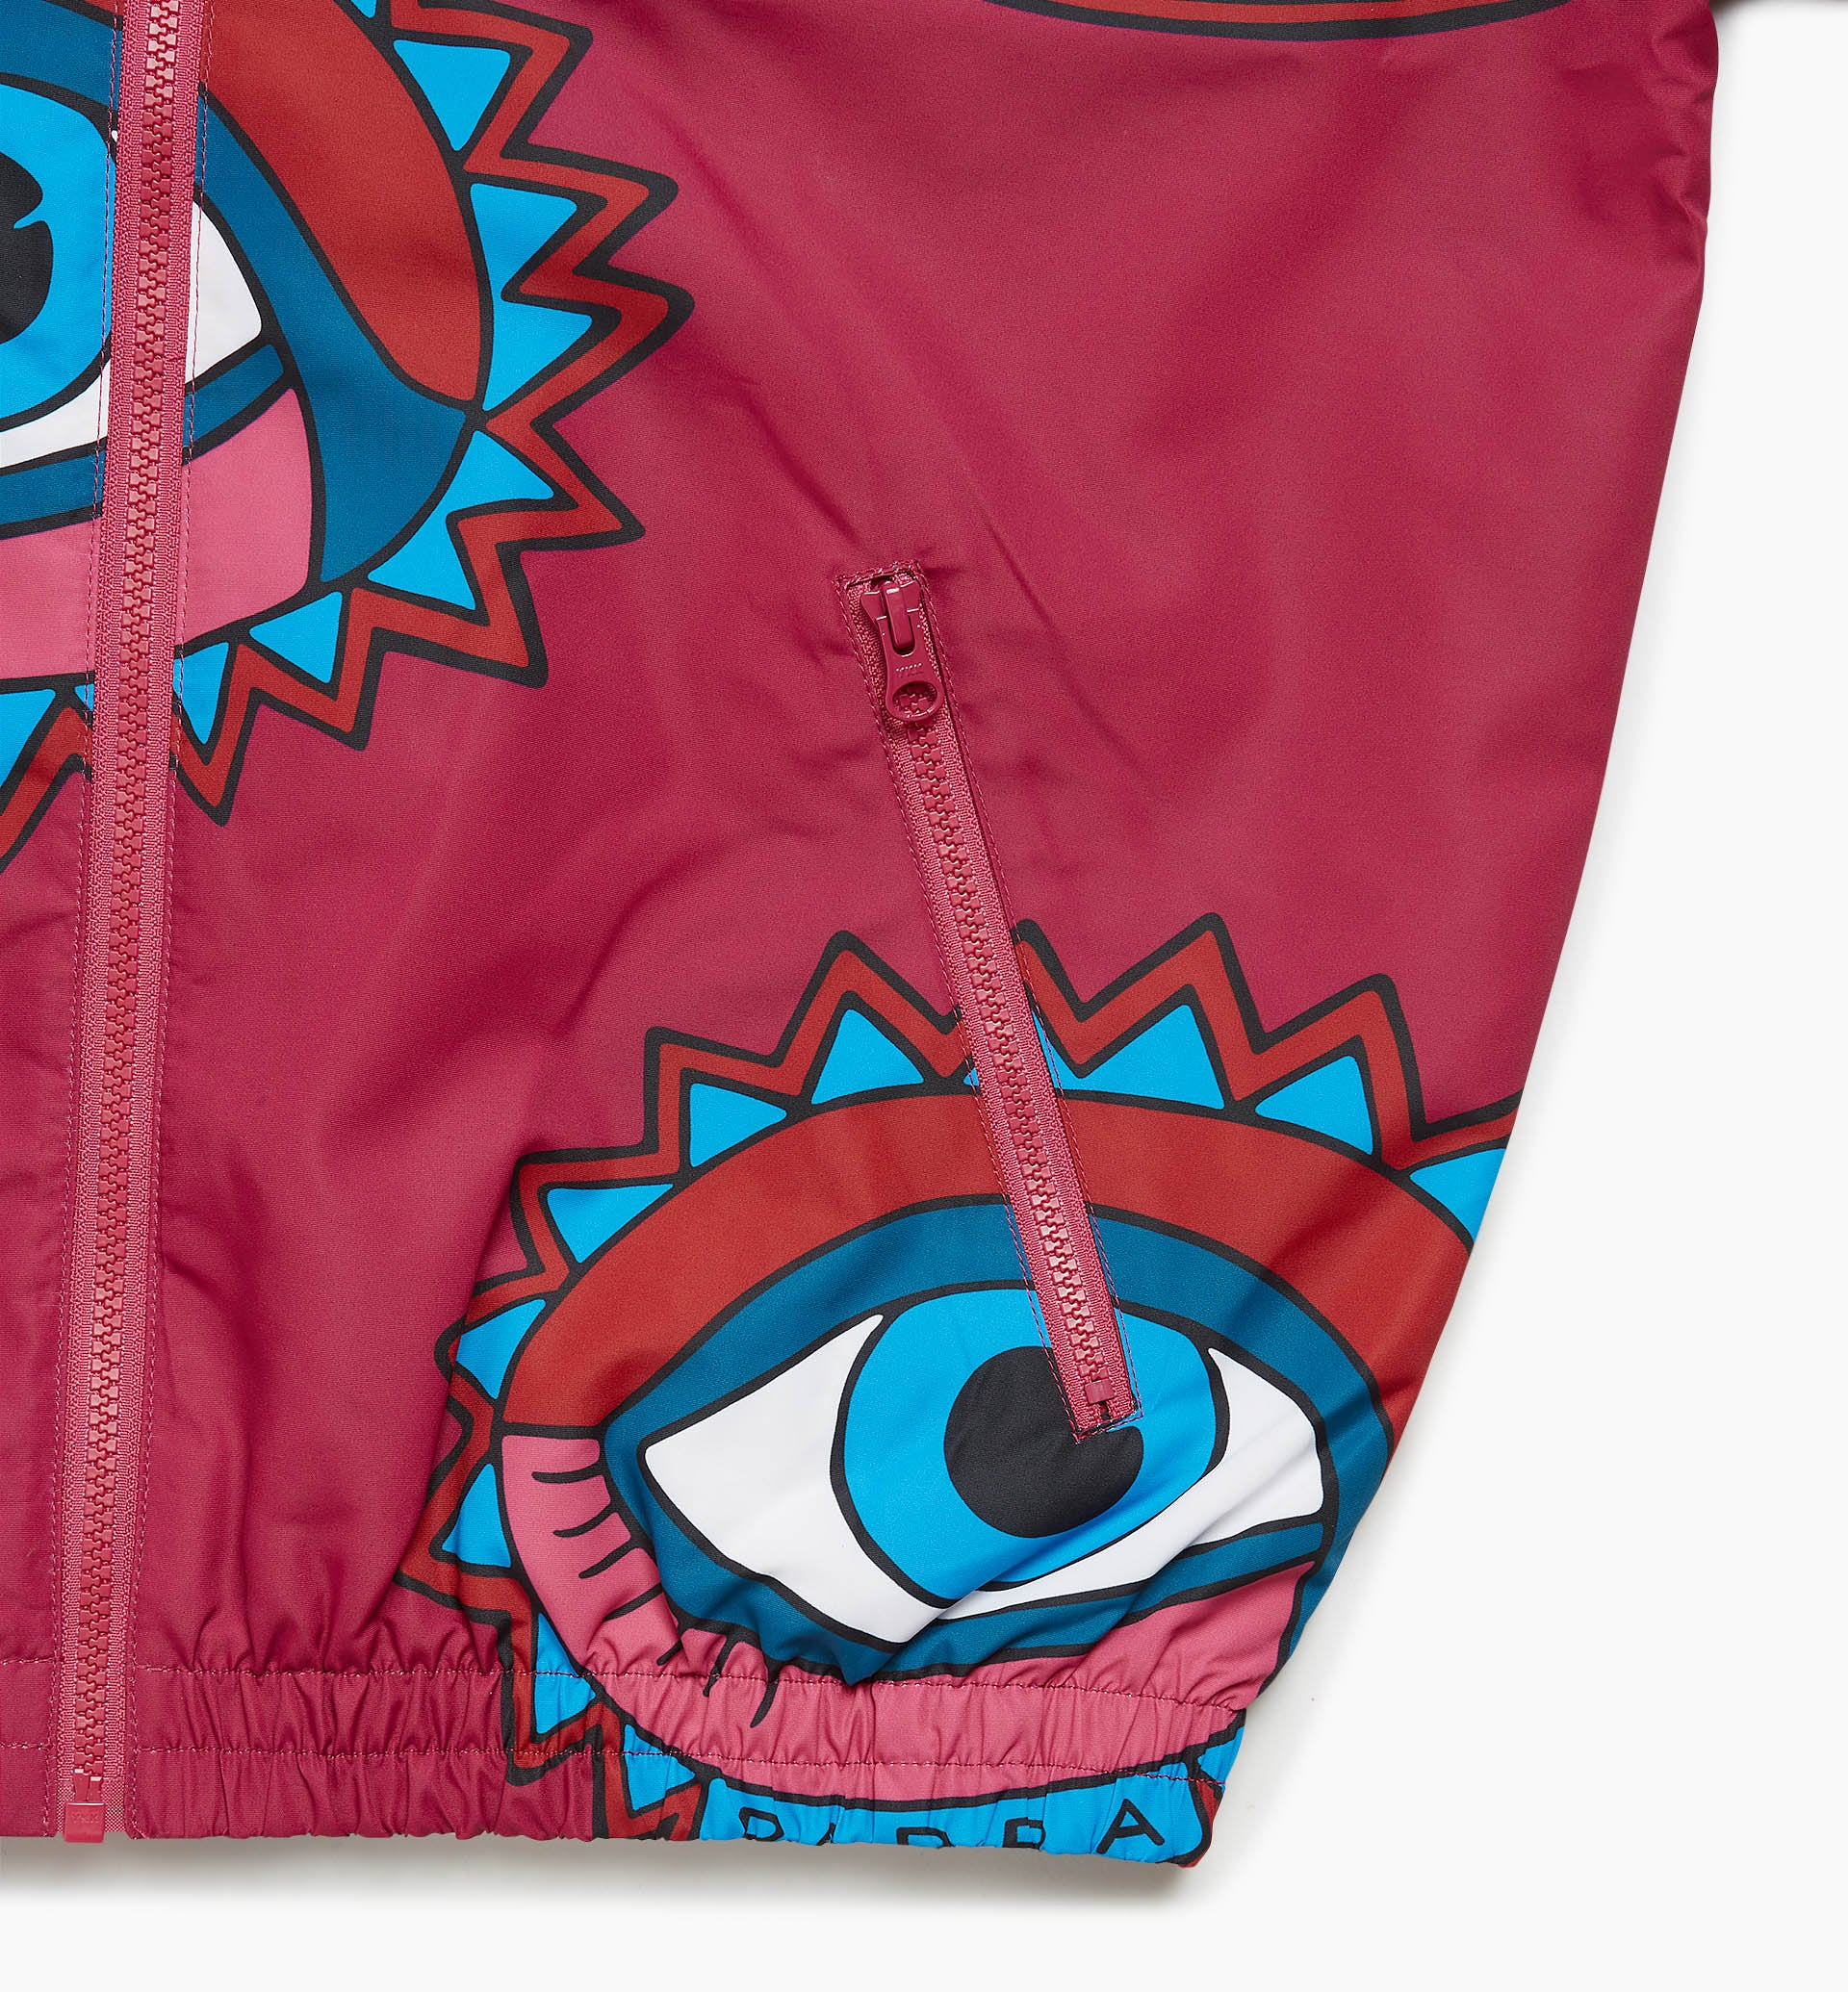 Parra - eyes open track top